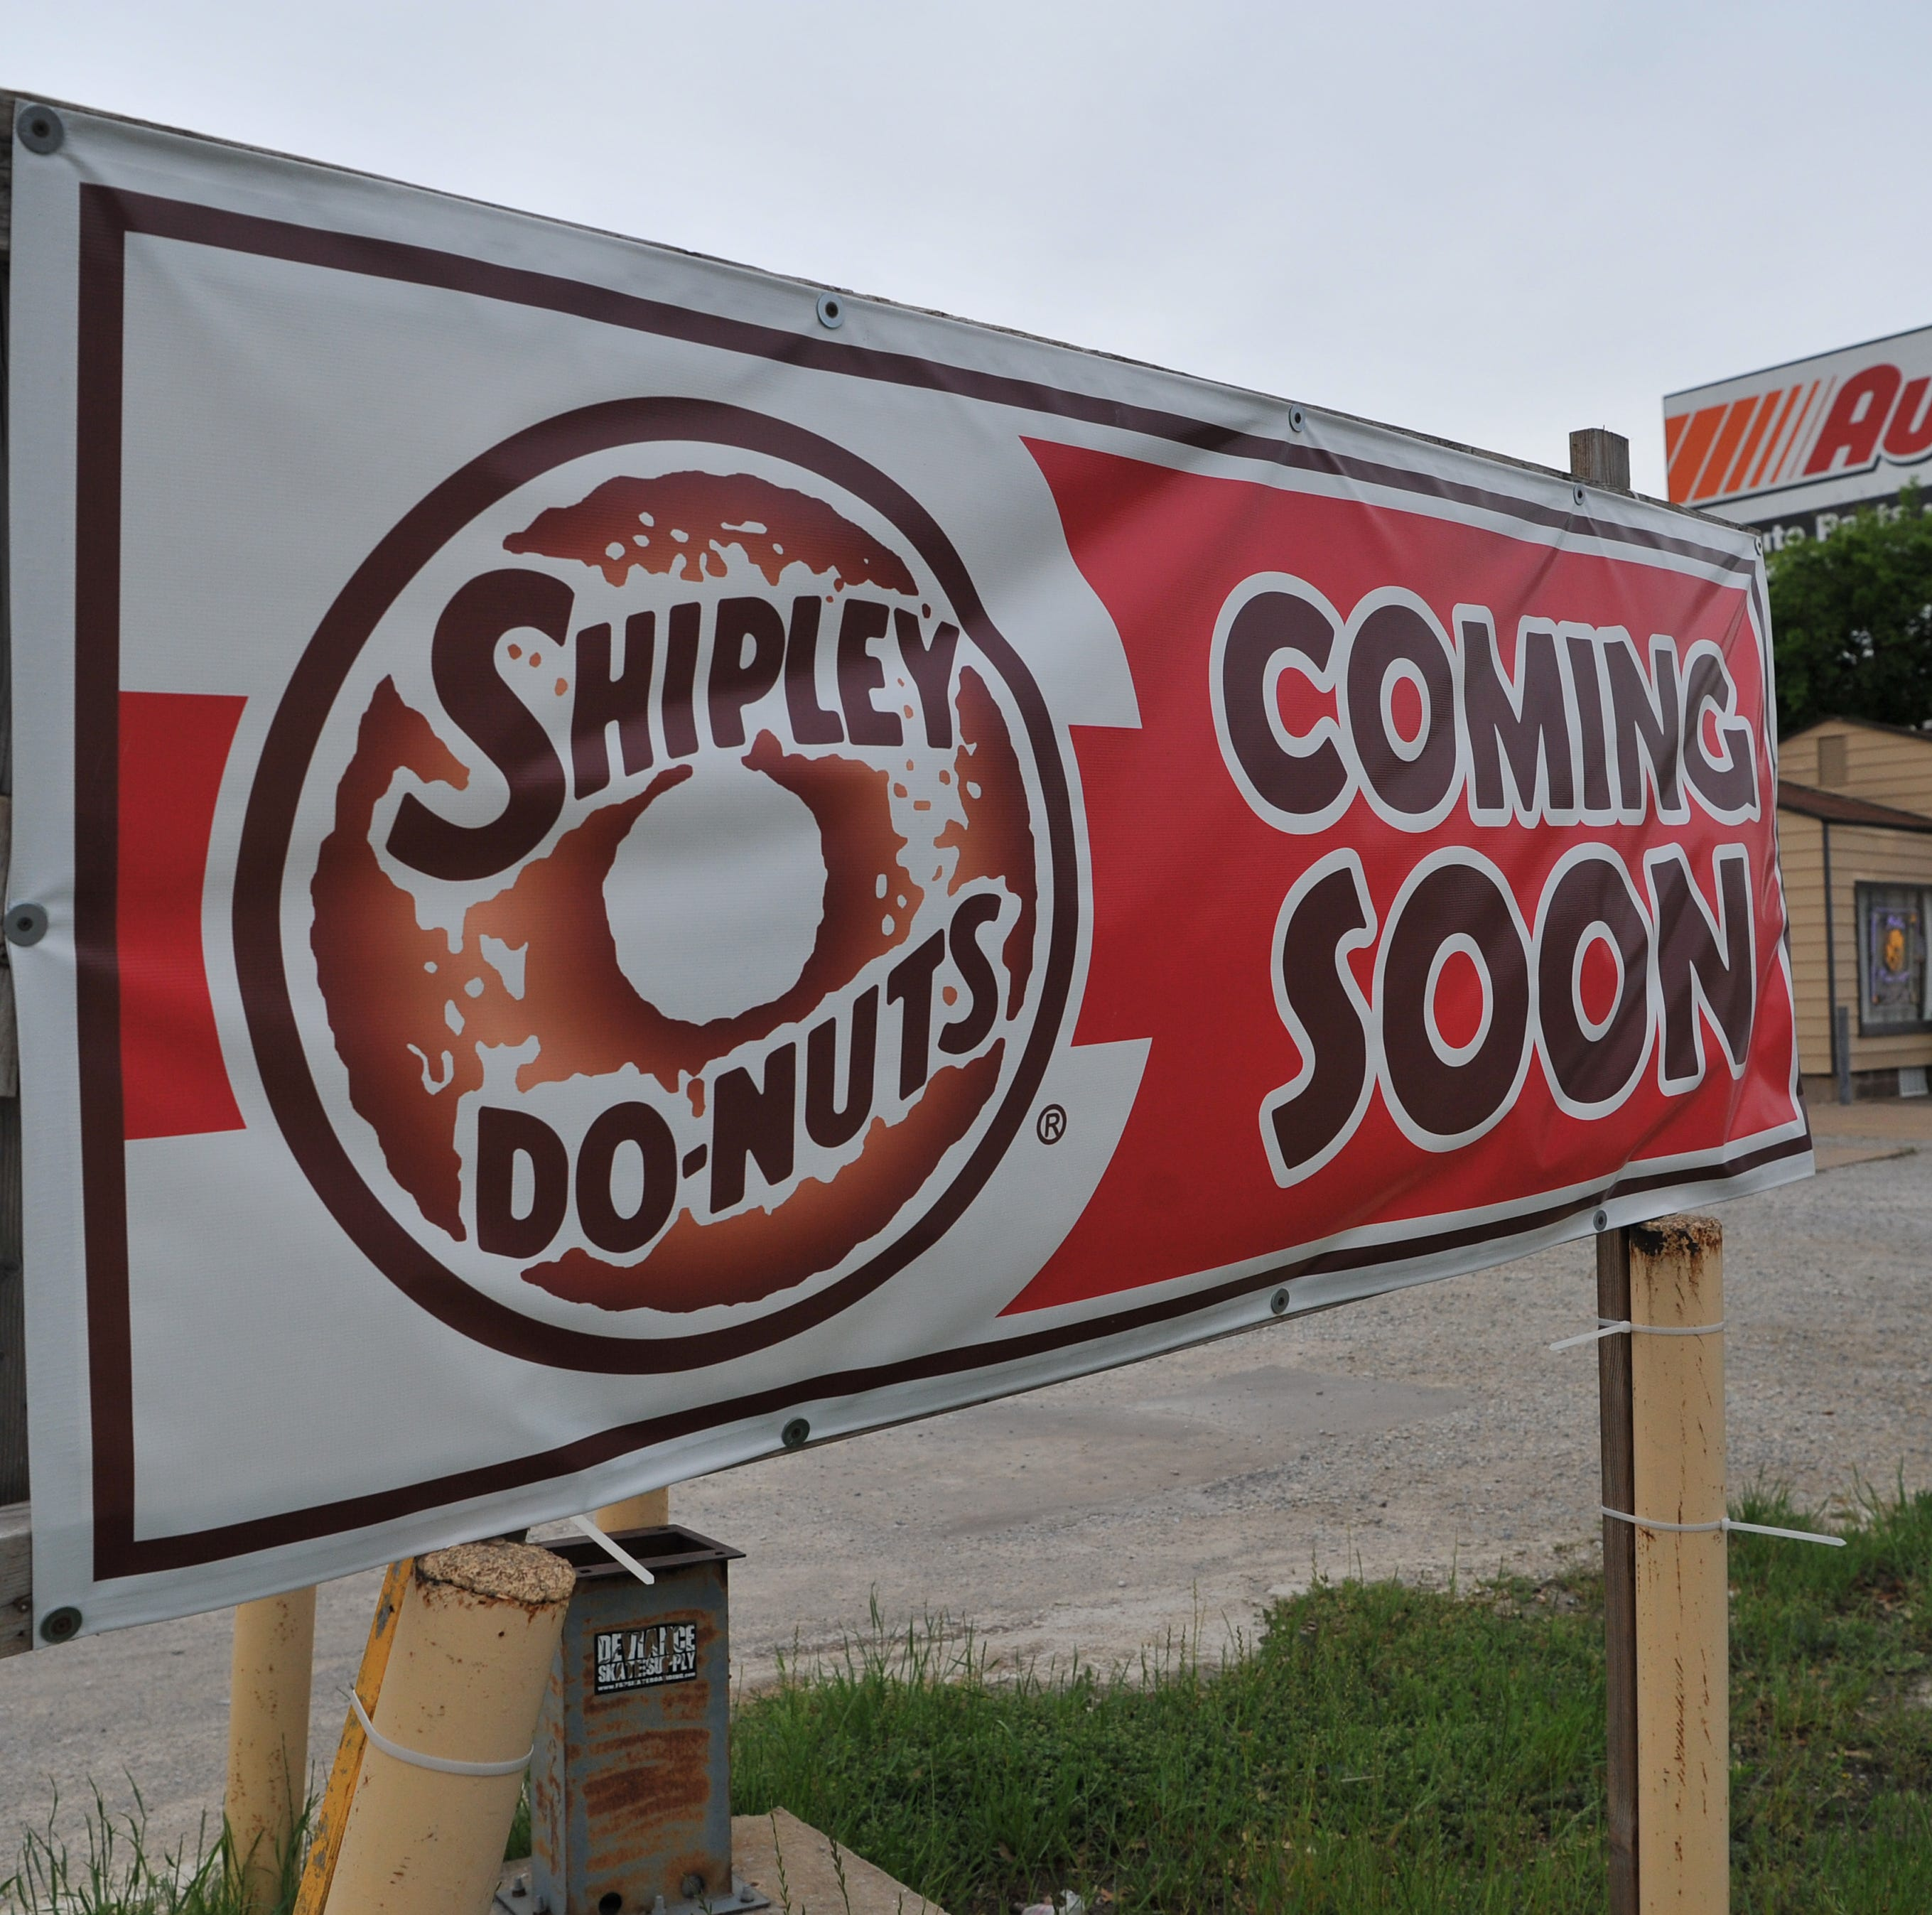 Is Wichita Falls about to get another doughnut shop?